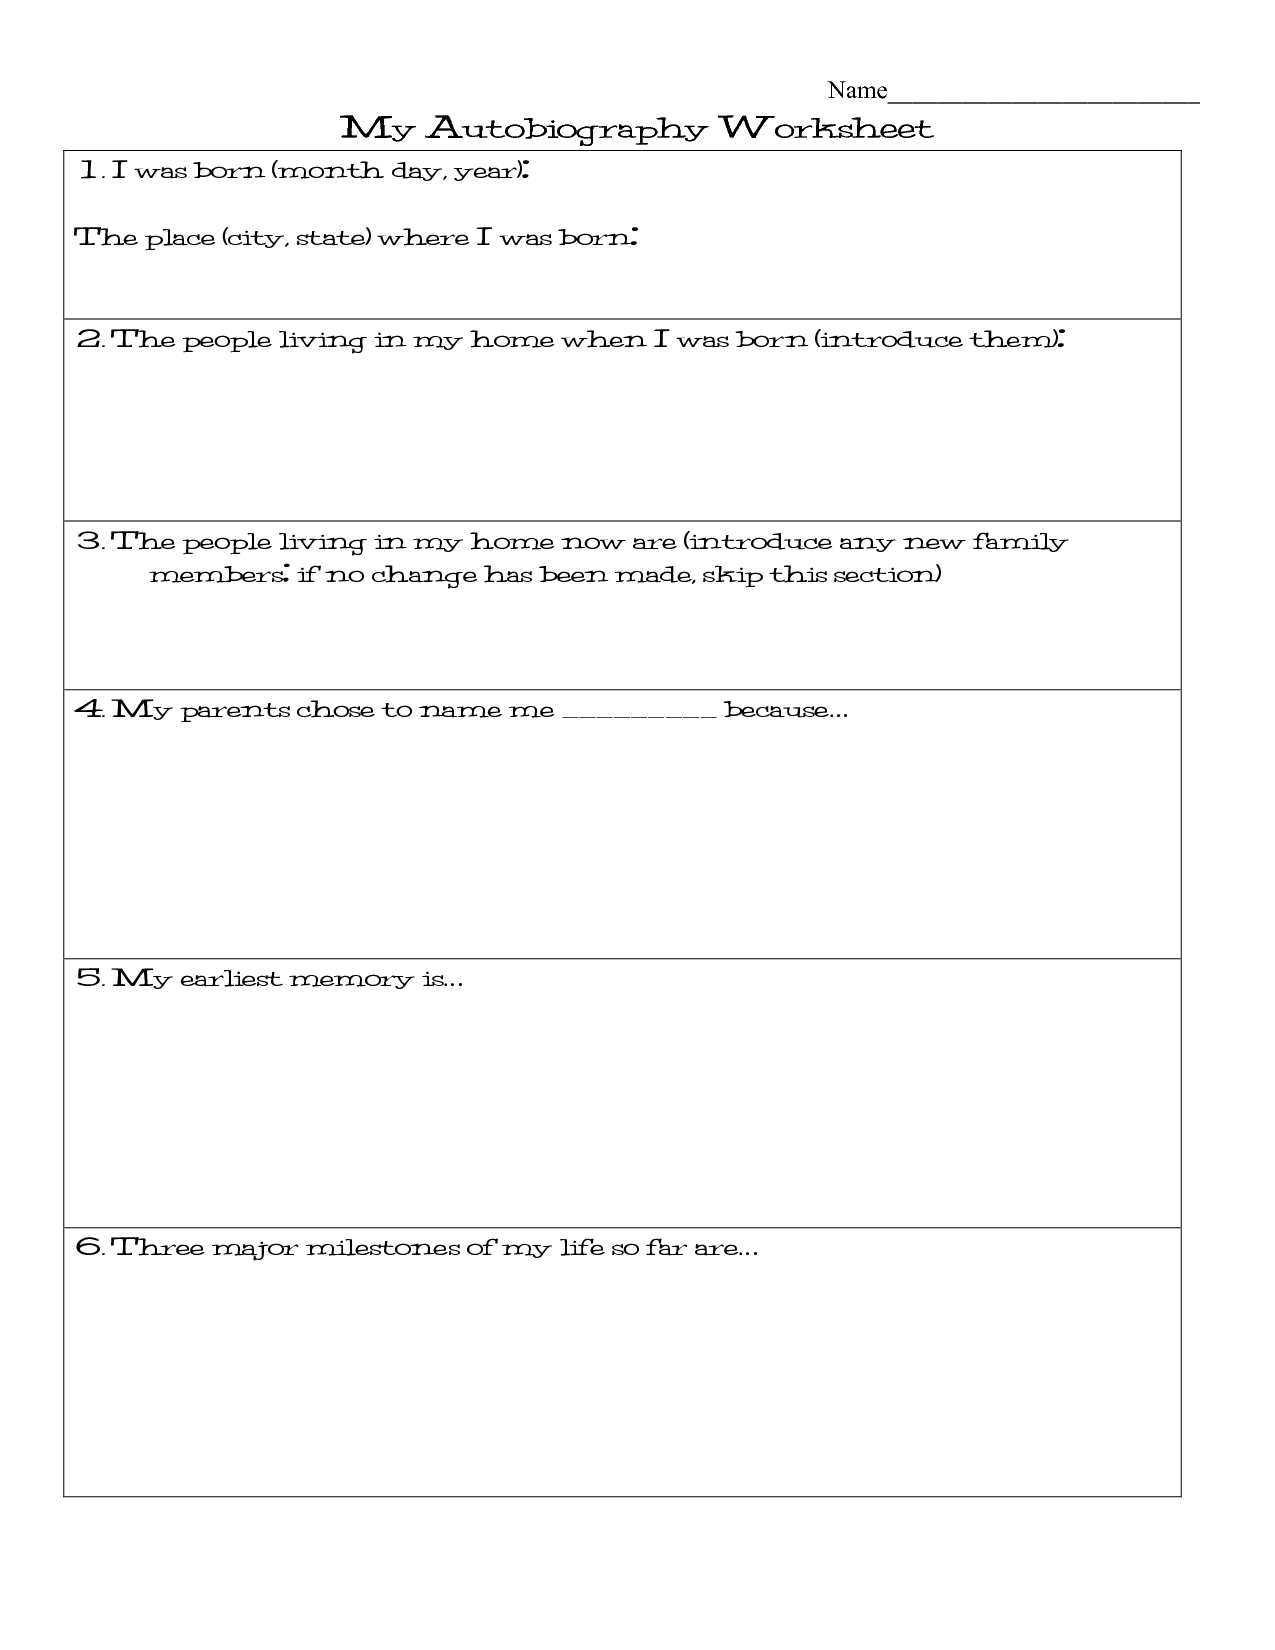 My Autobiography Worksheet